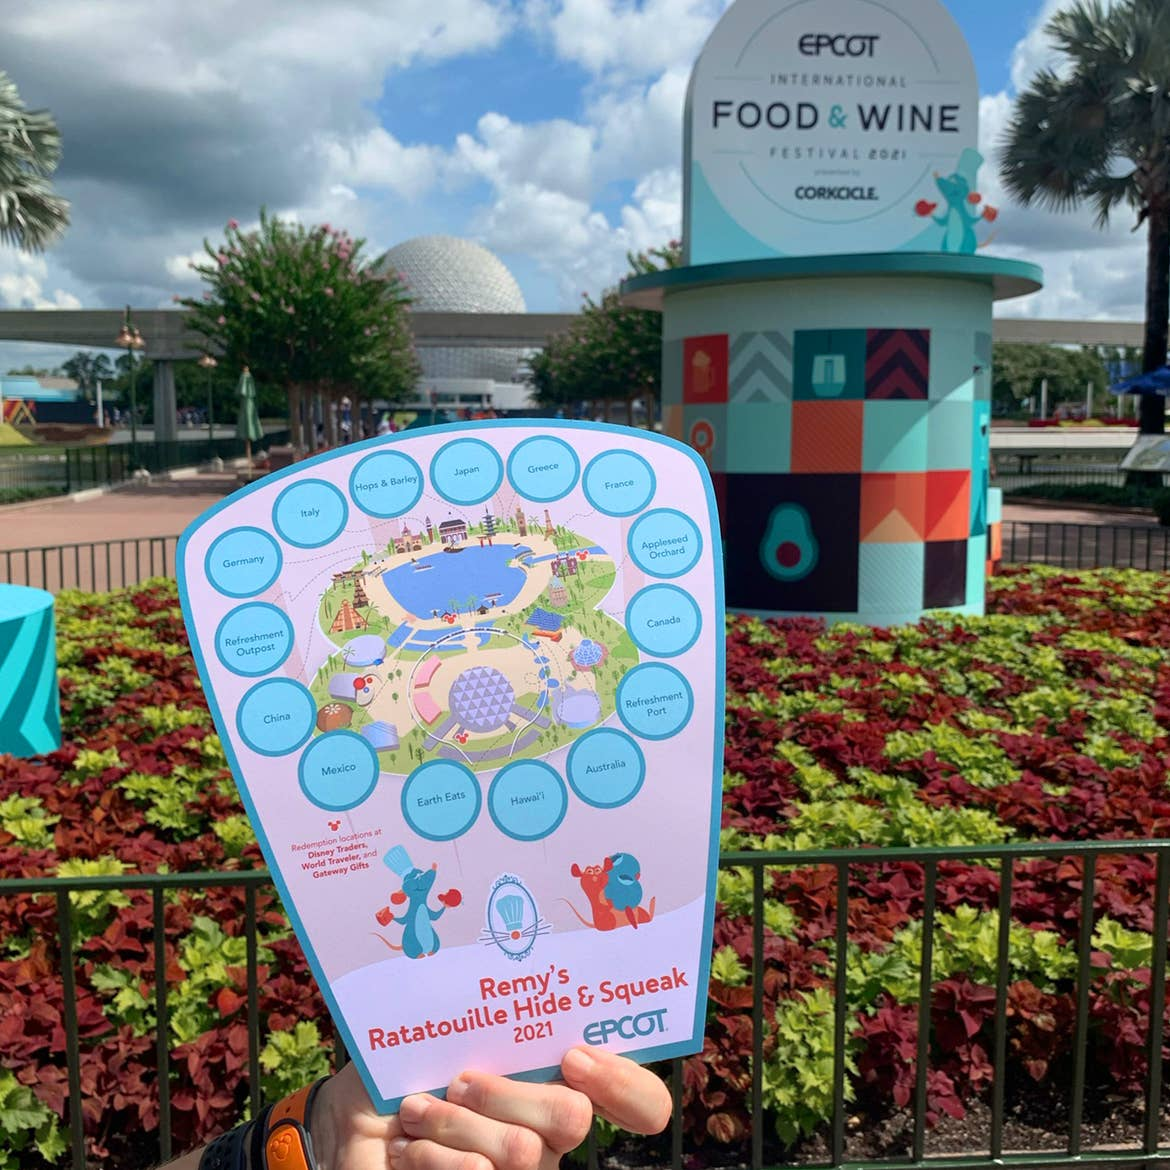 A hand holds a map for 'Remy's Hide & Squeak Scavenger Hunt' near a garden display sign with the Epcot Geosphere in the background.